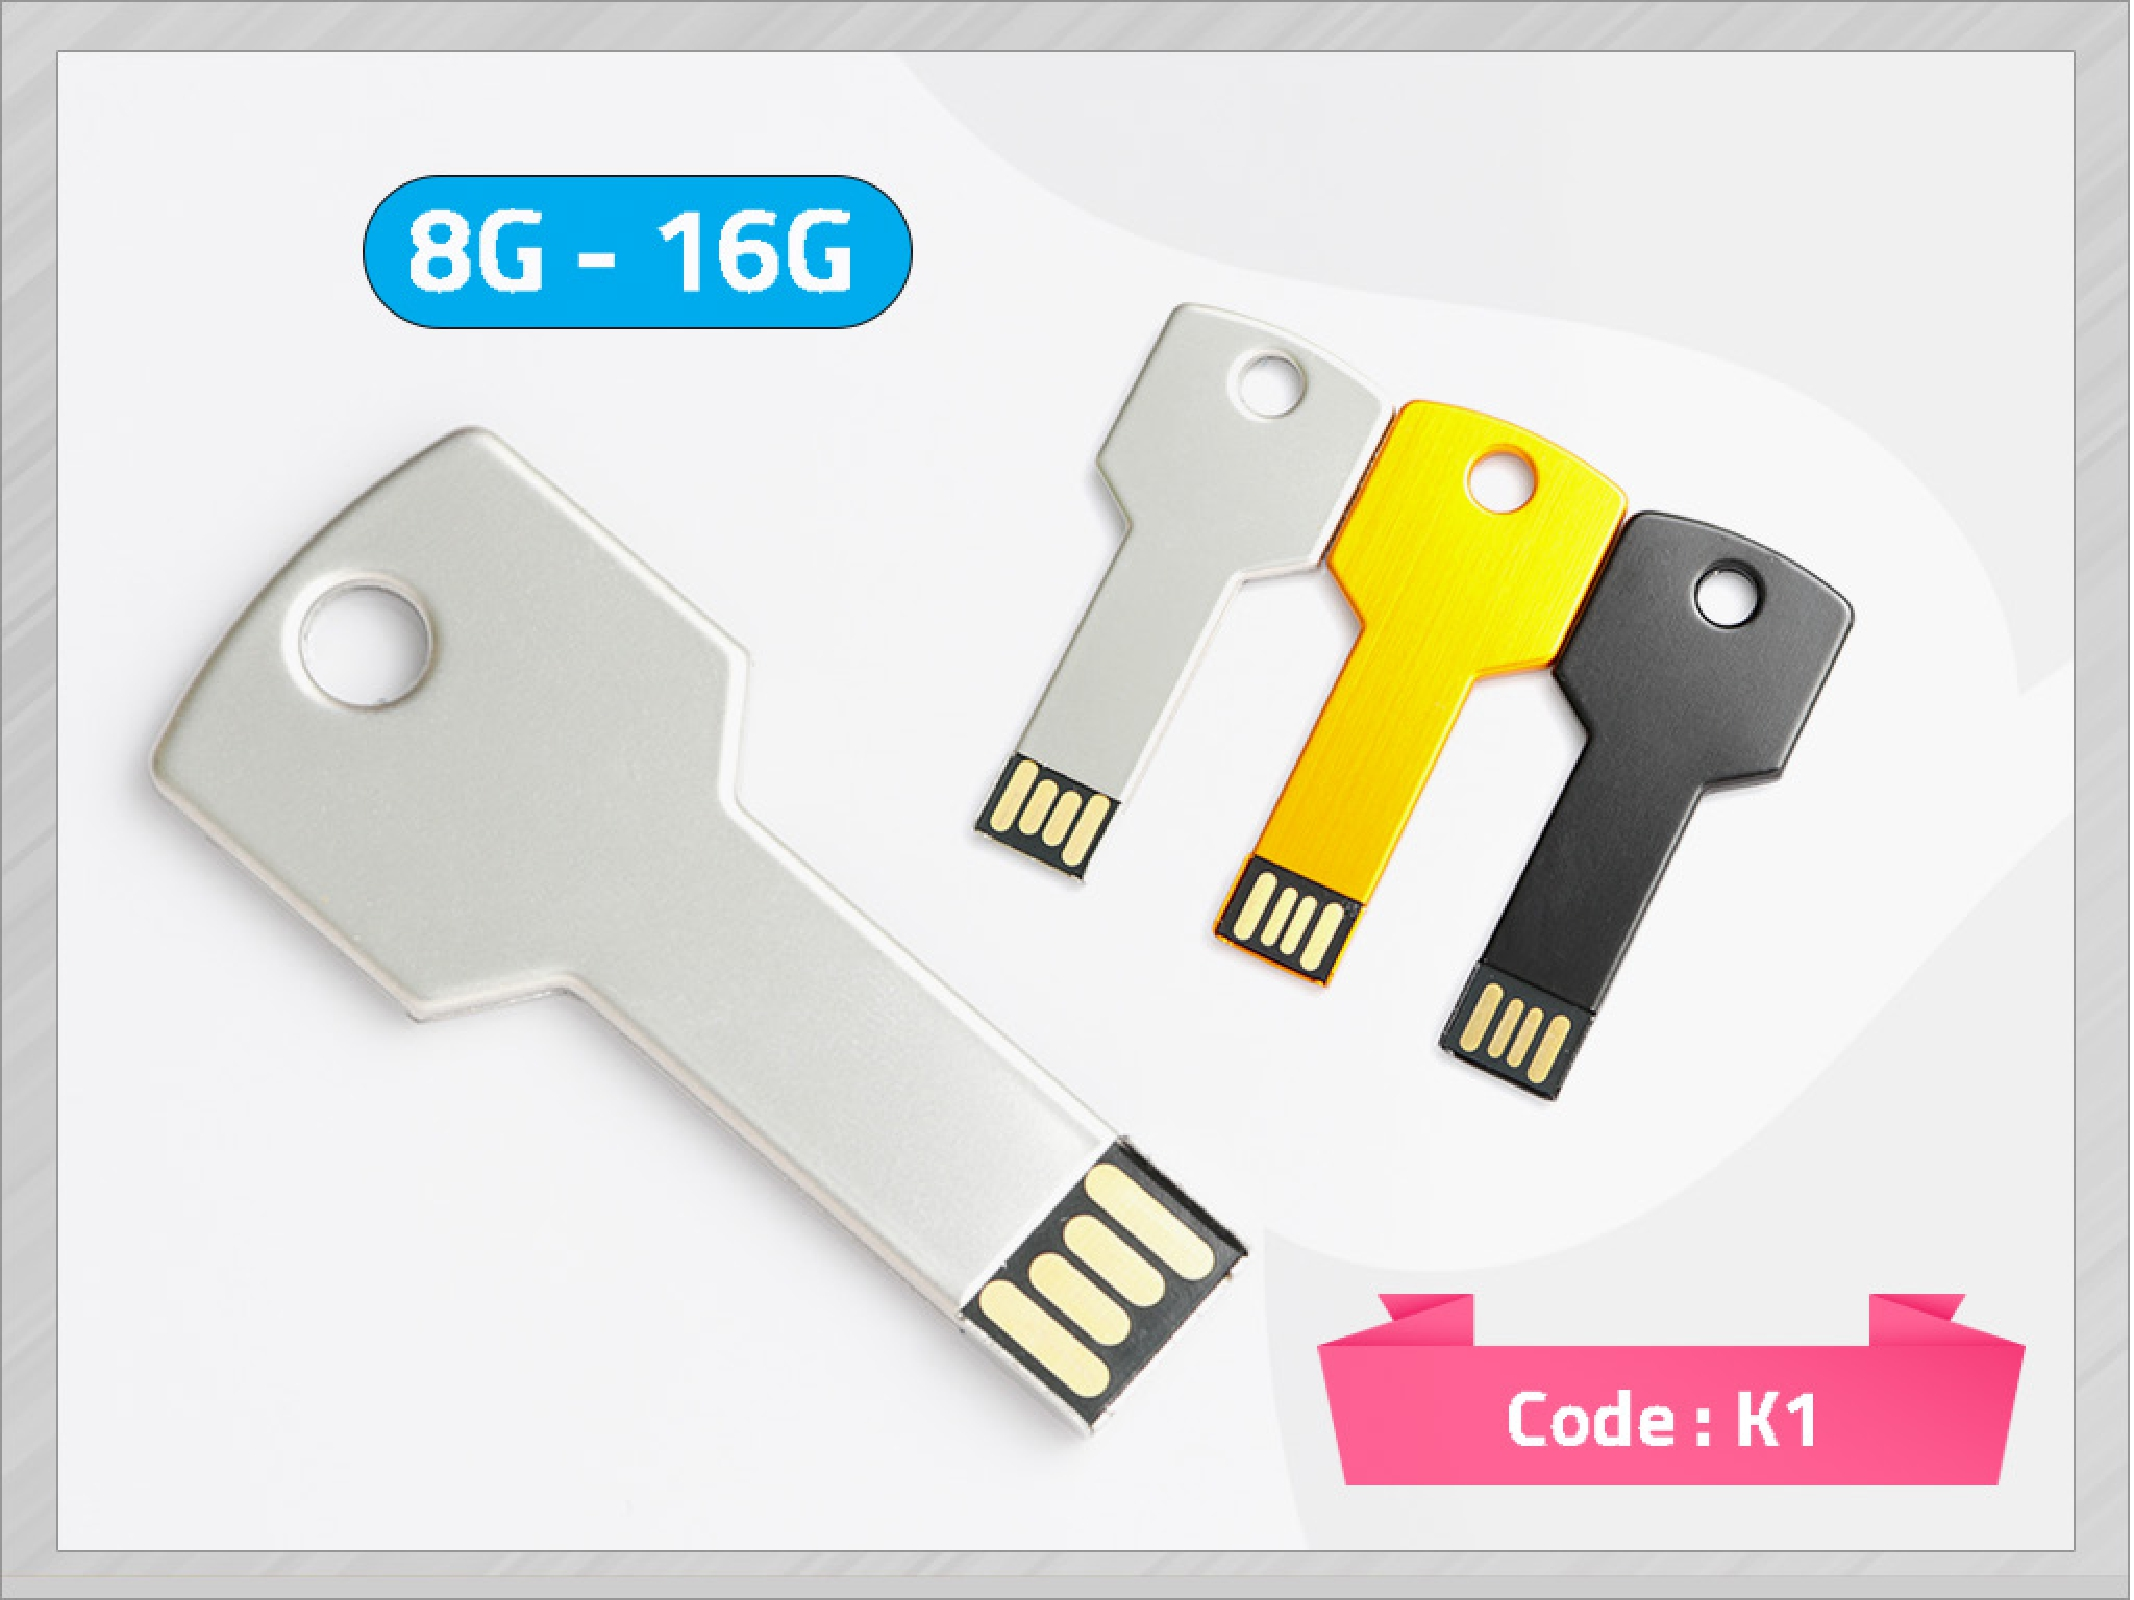 3-usb-flash-34-new_page-0022